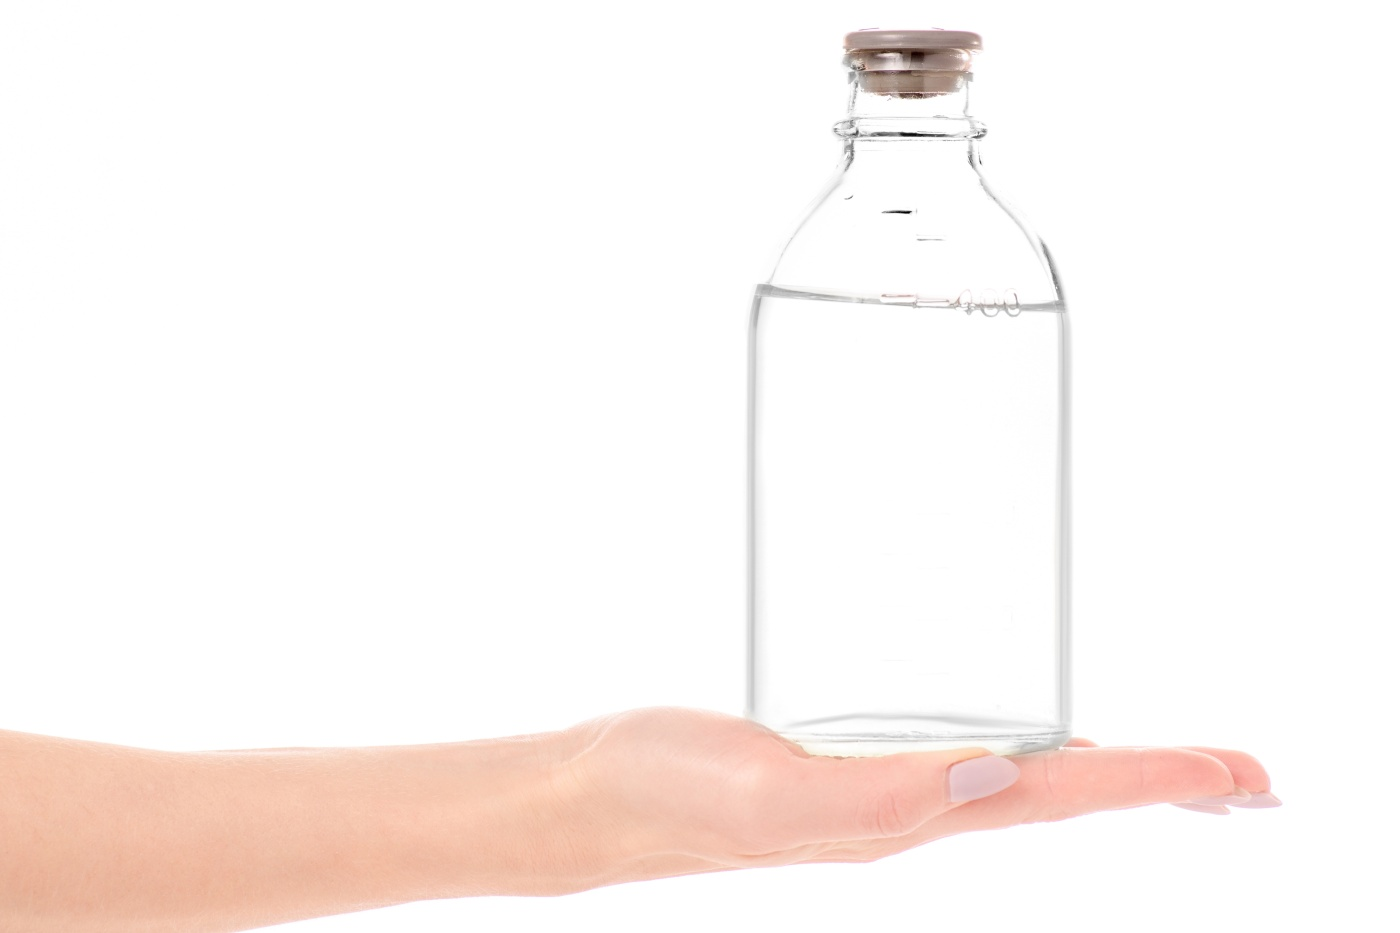 Bottle with medical alcohol disinfection in hand